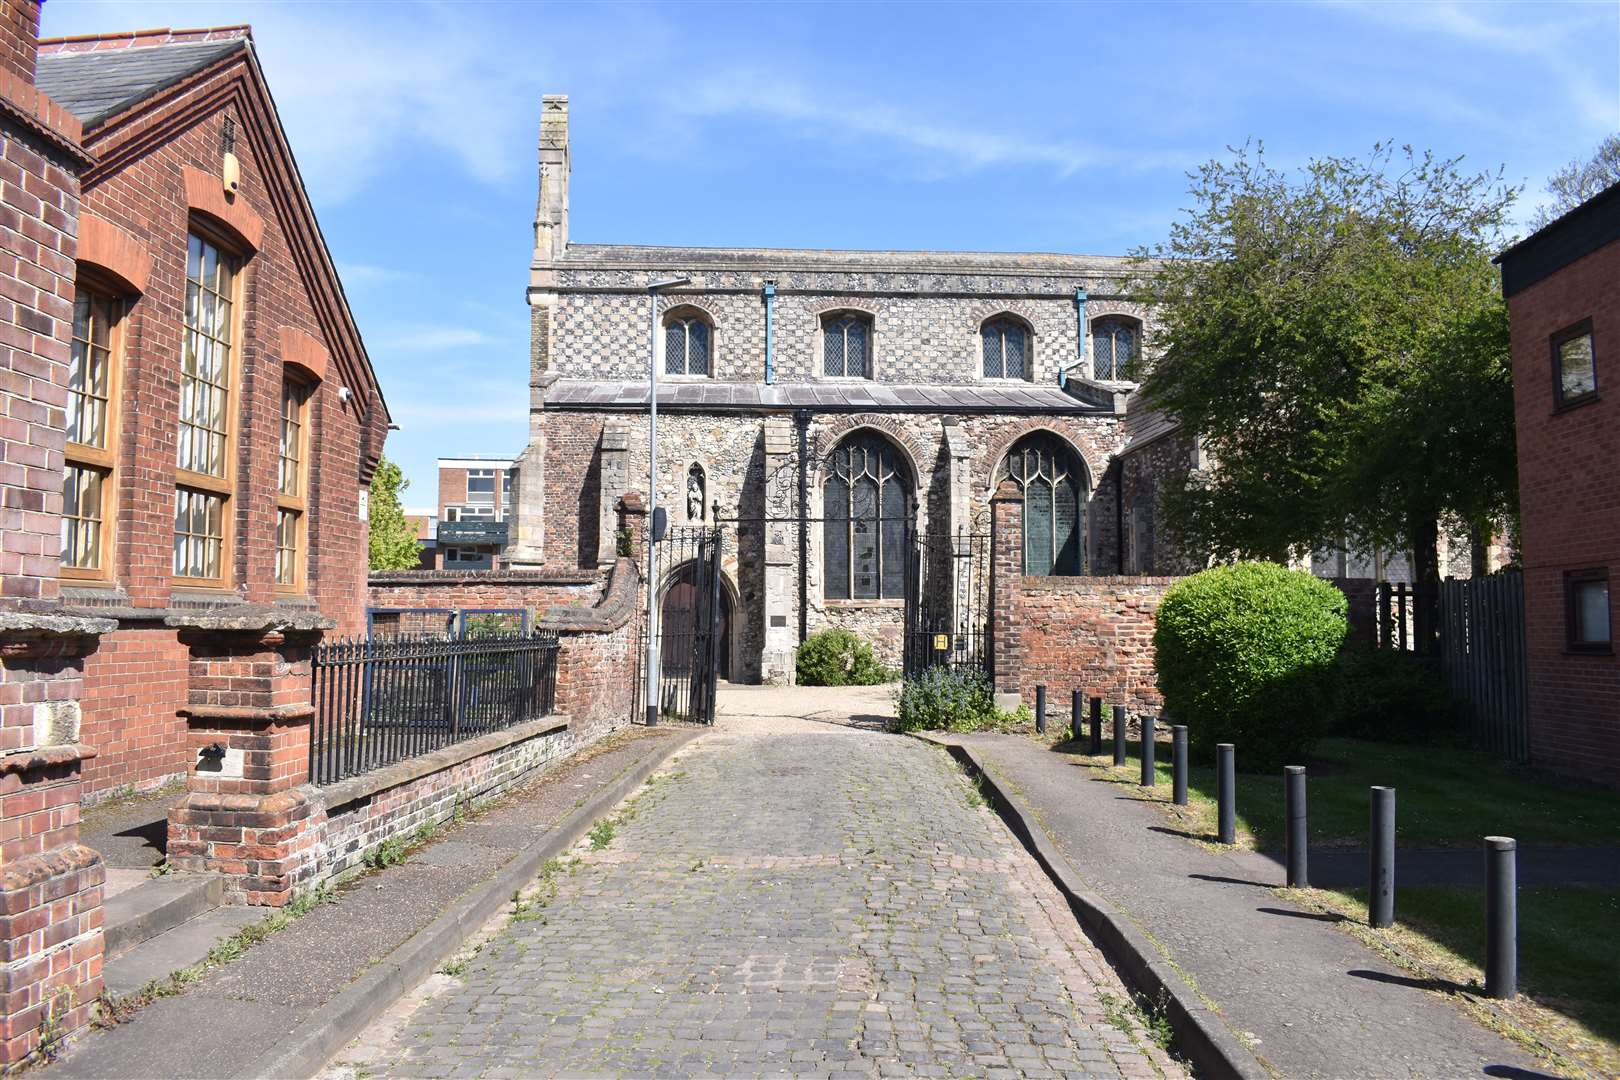 The impact on buildings such as the nearby All Saints' Church was a key concern for opponents of the Hillington Square plan